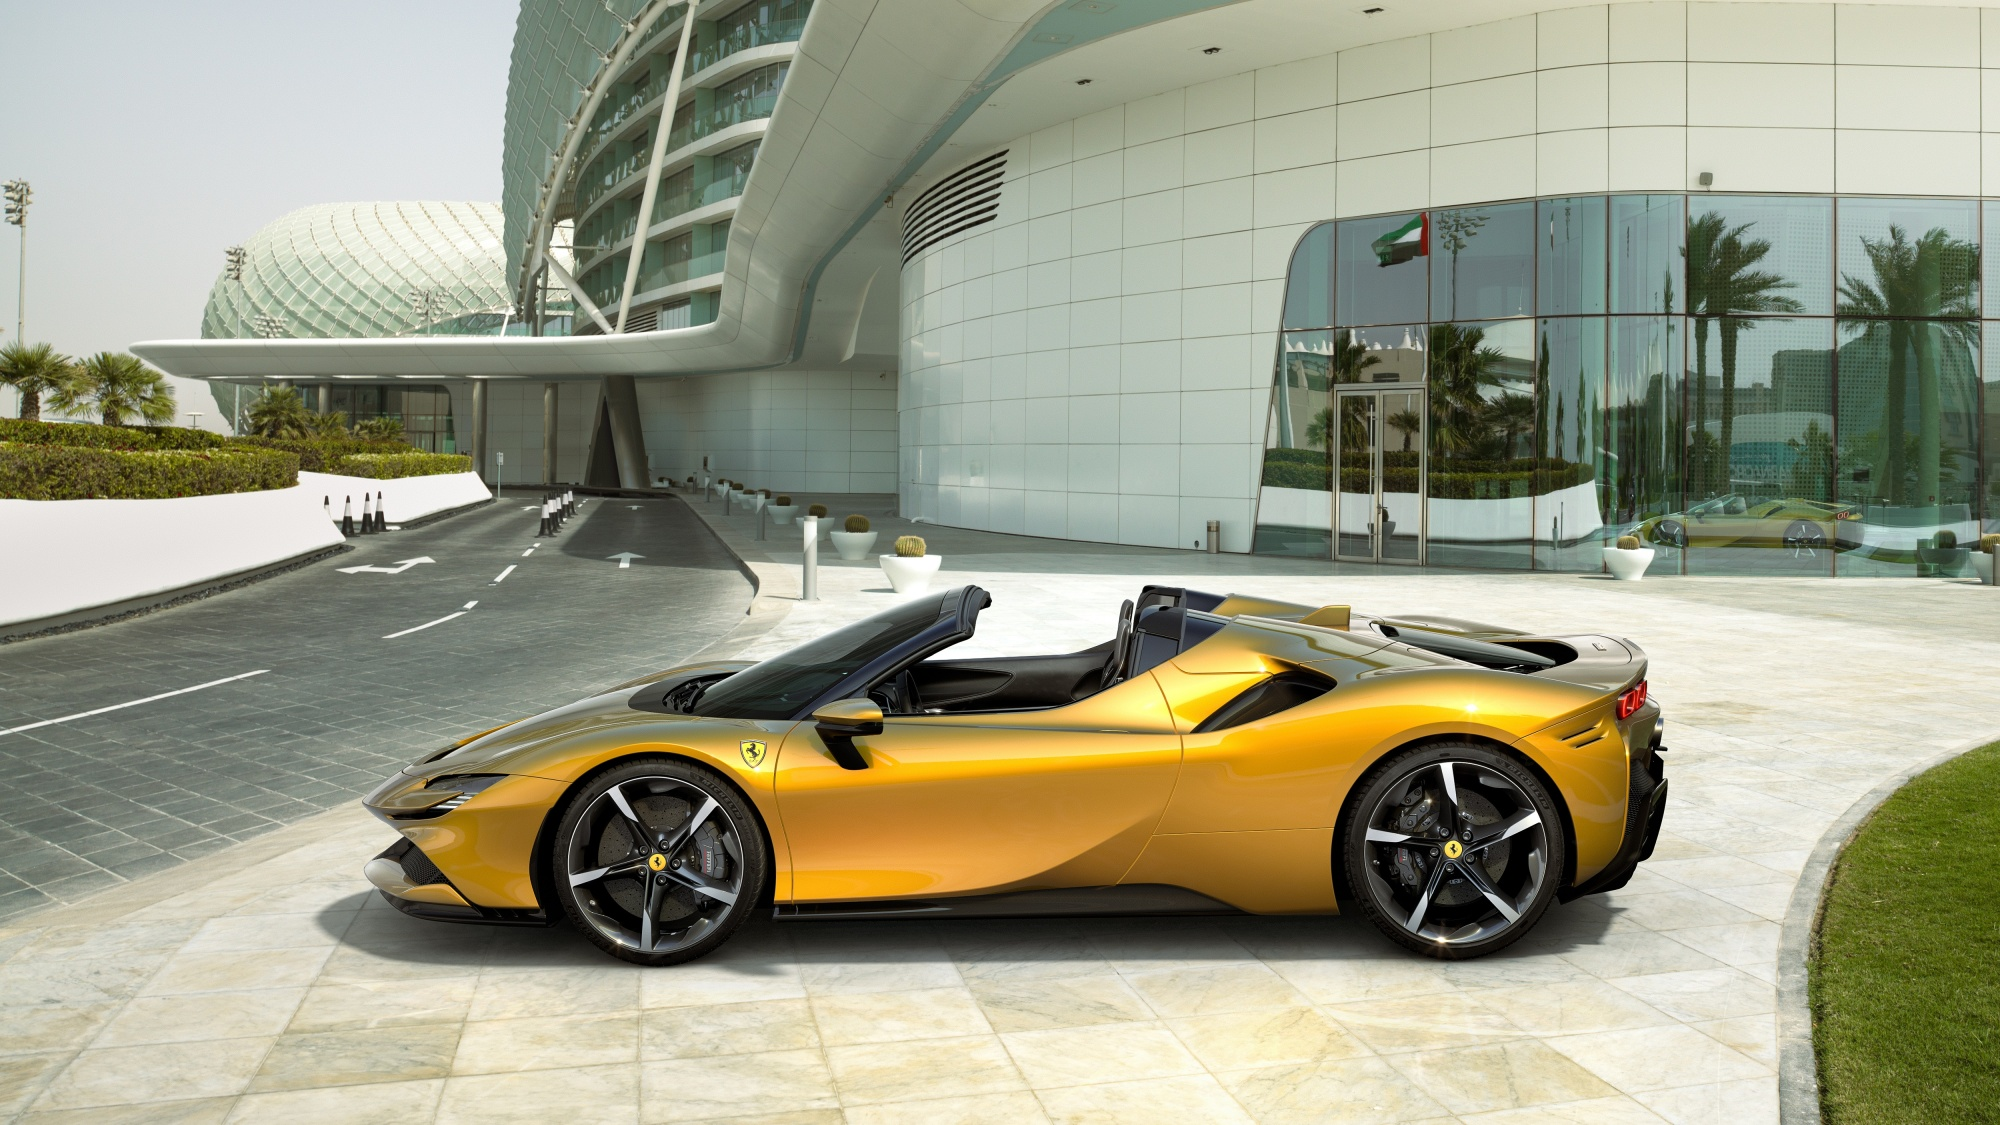 Ferrari S First Plug In Hybrid Convertible Packs Powerful Punch Bloomberg